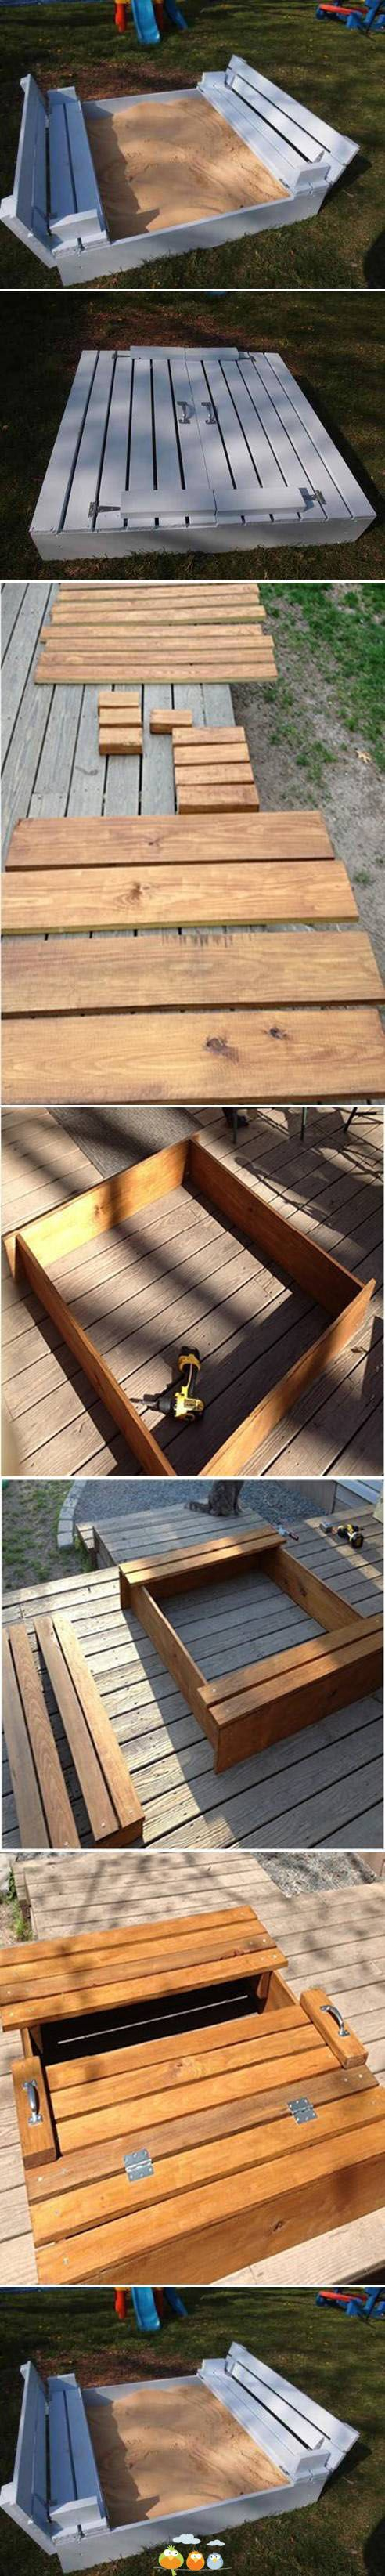 wood pallet sandbox, with bench seats that unfold to cover the sandbox...very…